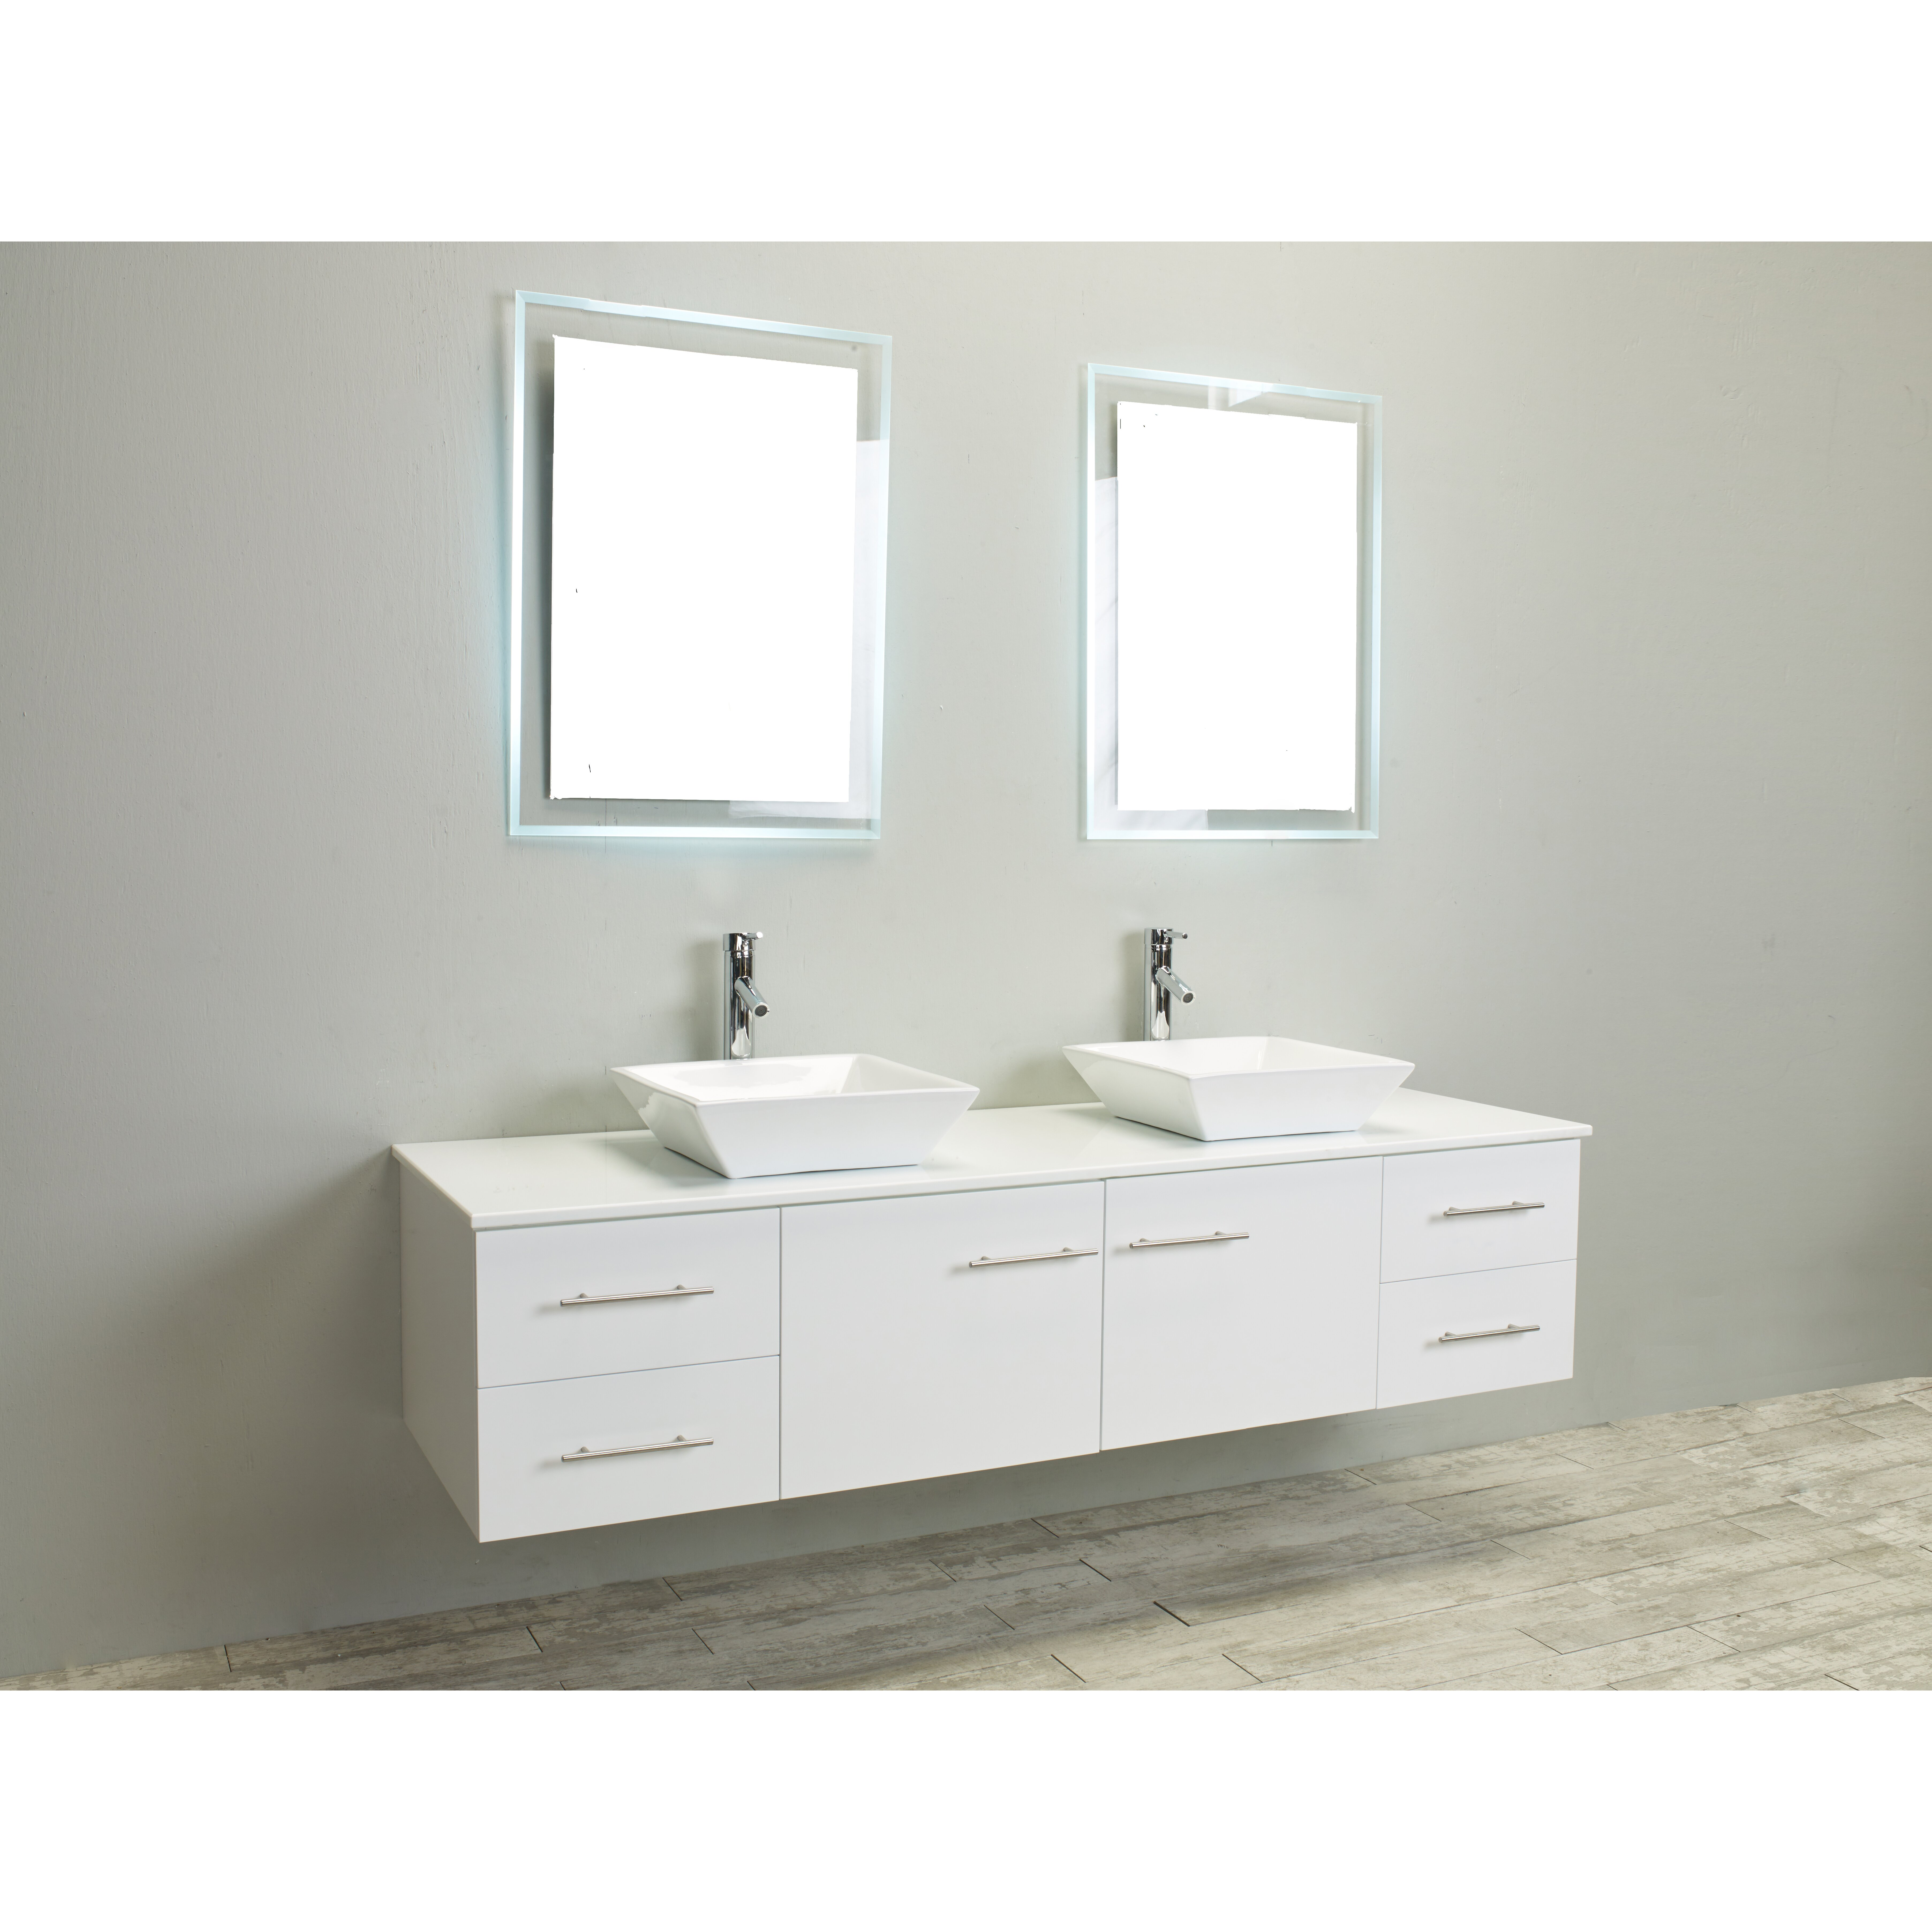 Eviva totti wave 72 inch white modern double sink bathroom vanity with counter top and double for 72 inch bathroom vanity double sink